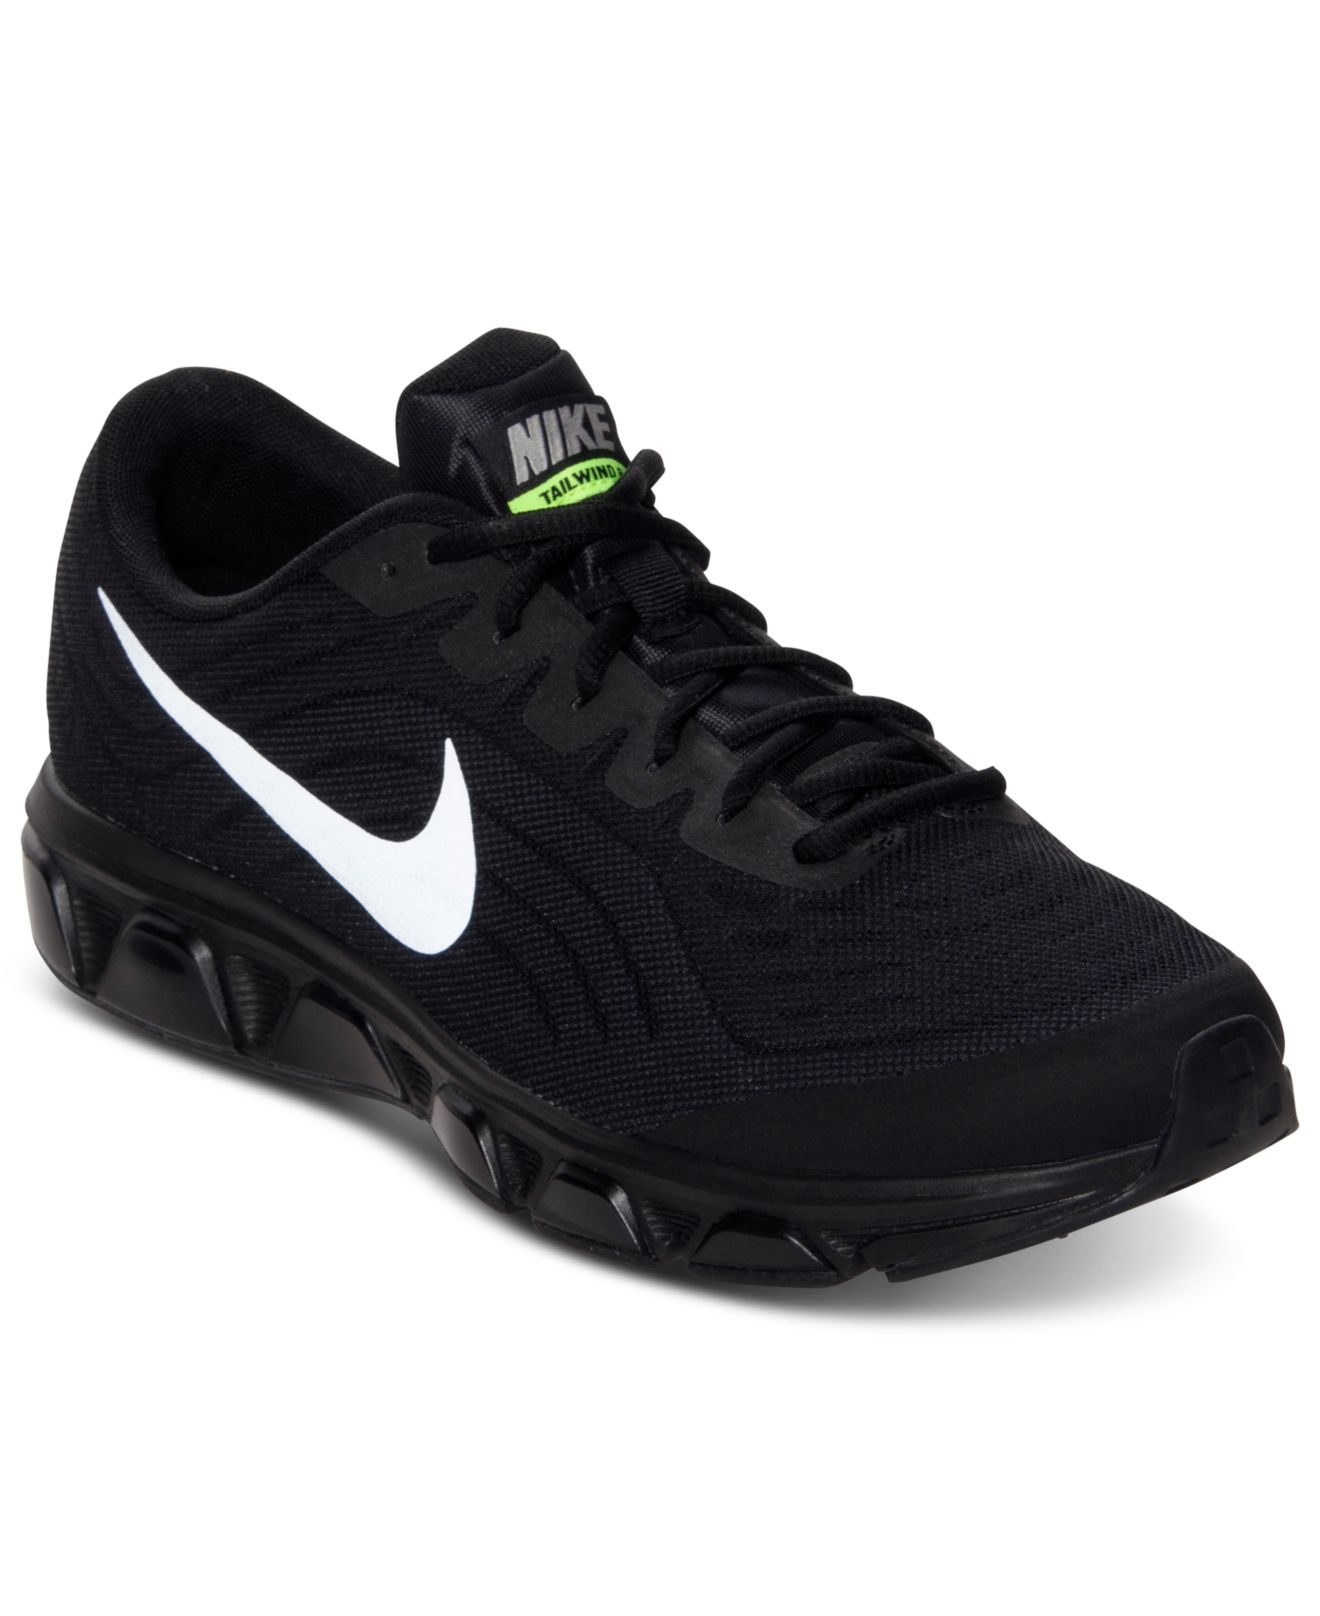 buy online f3aa9 9c6cb Nike Men S Air Max Tailwind 6 Running Sneakers From Finish Line in ...